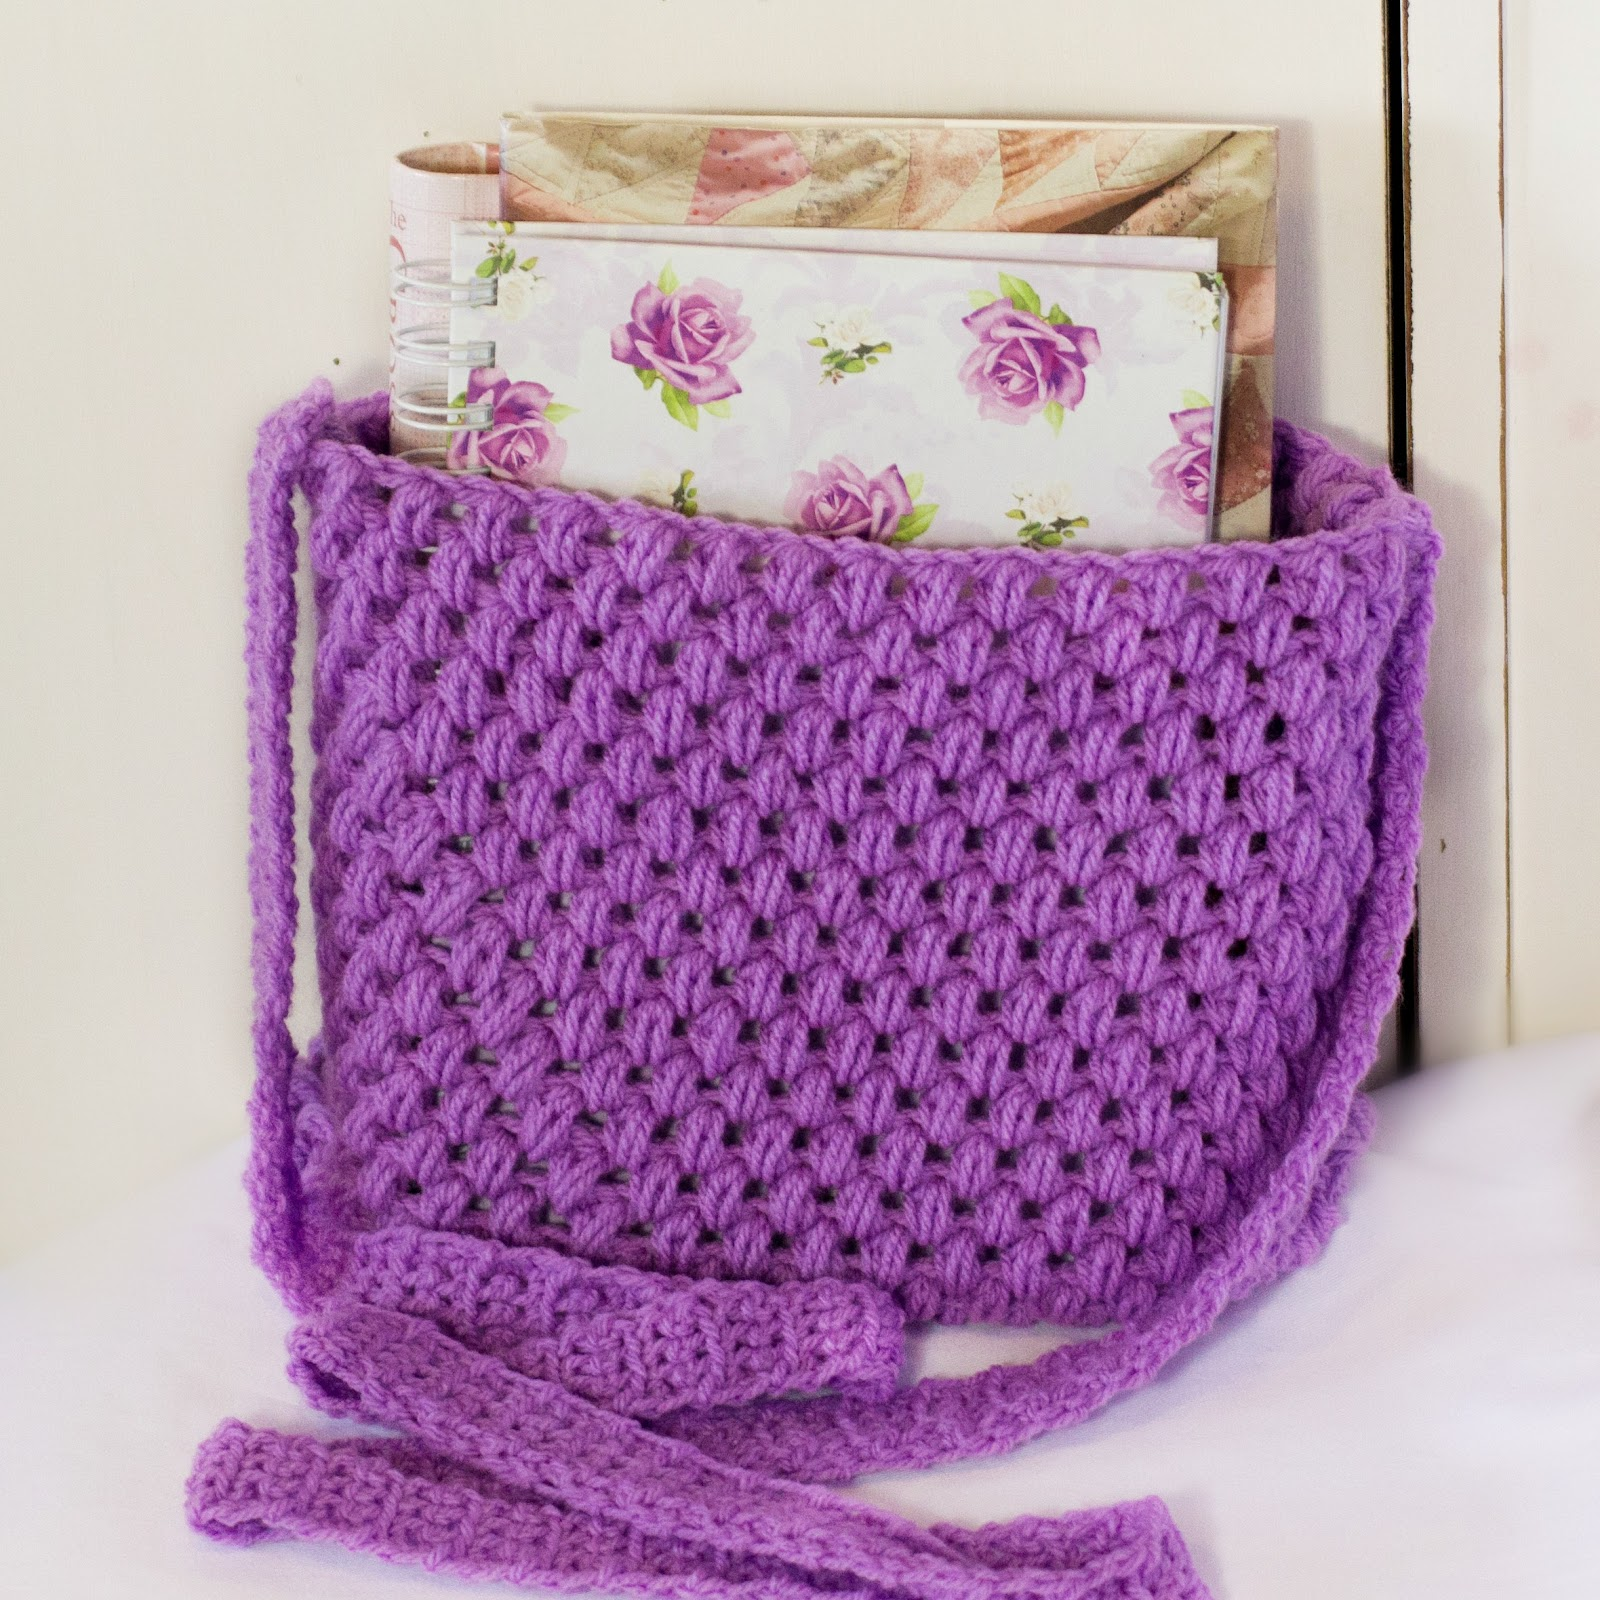 Crochet Bag Making : ... Craft, Crochet, Create: Out and About ~ Easy Tote Bag Crochet Pattern